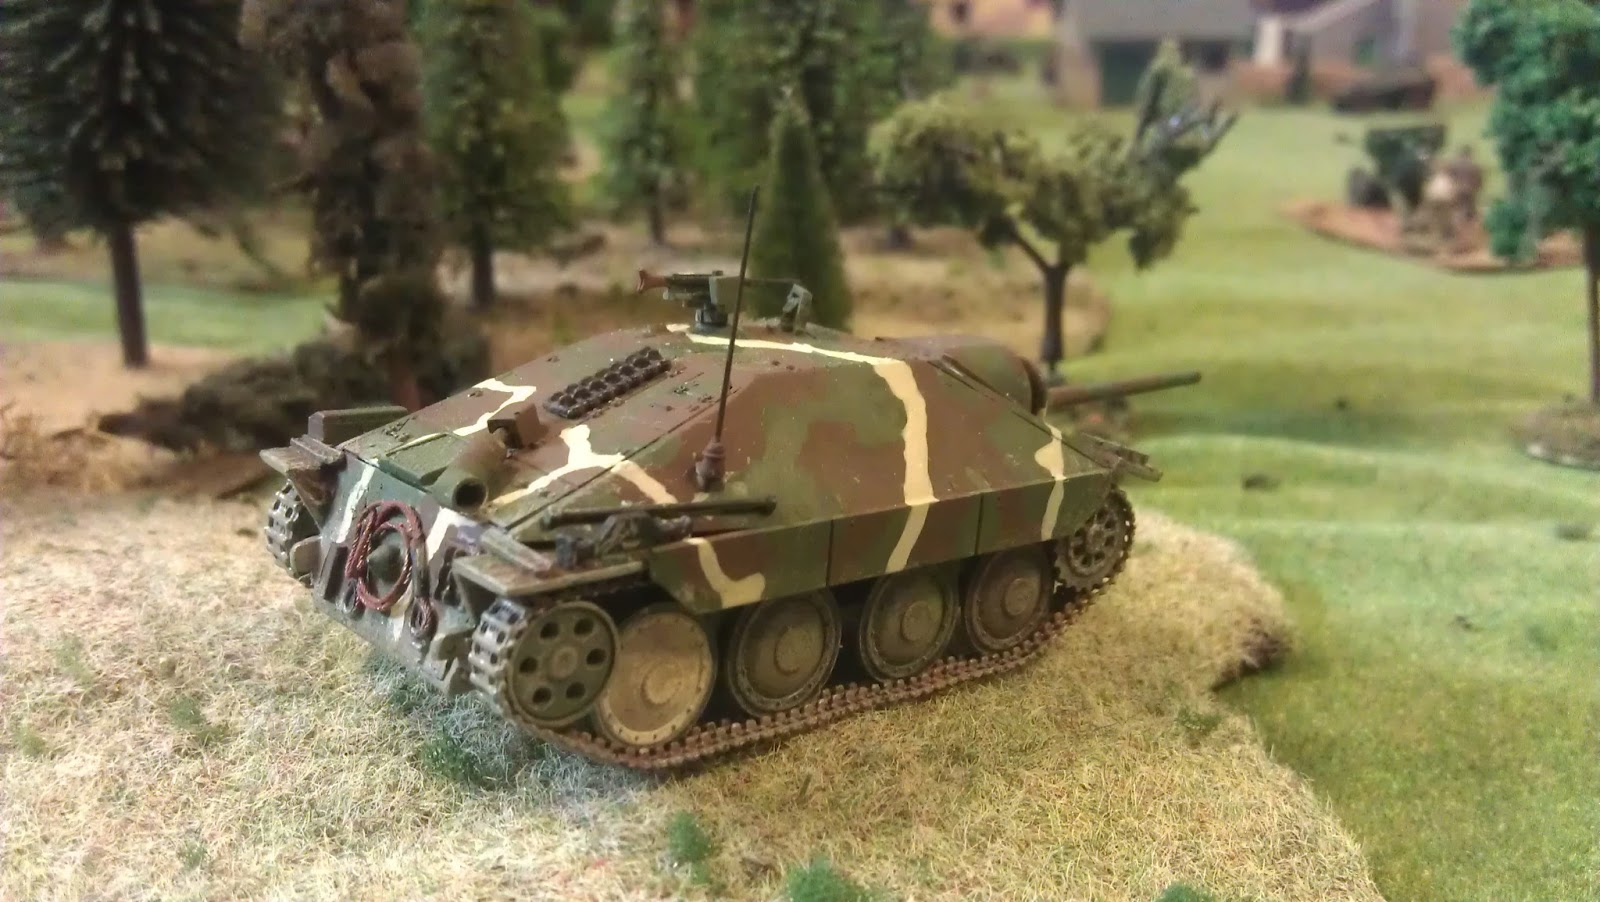 A Hetzer retrea... eh, redeploying